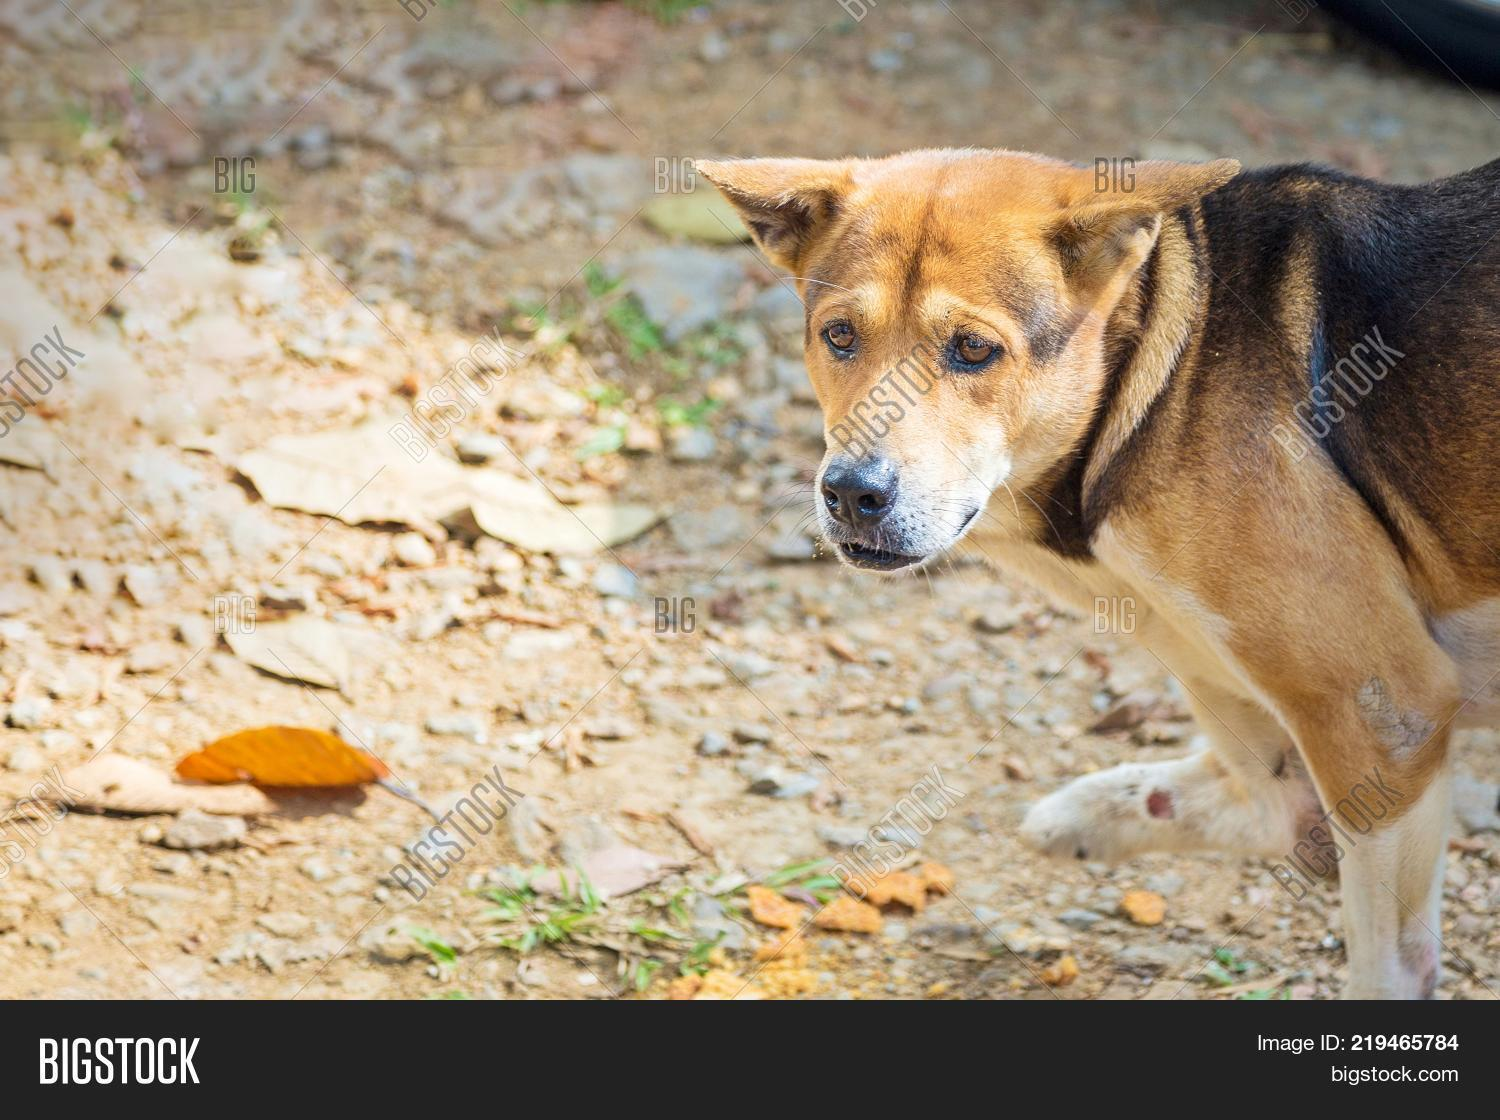 Brown Stray Dog That Image & Photo (Free Trial) | Bigstock